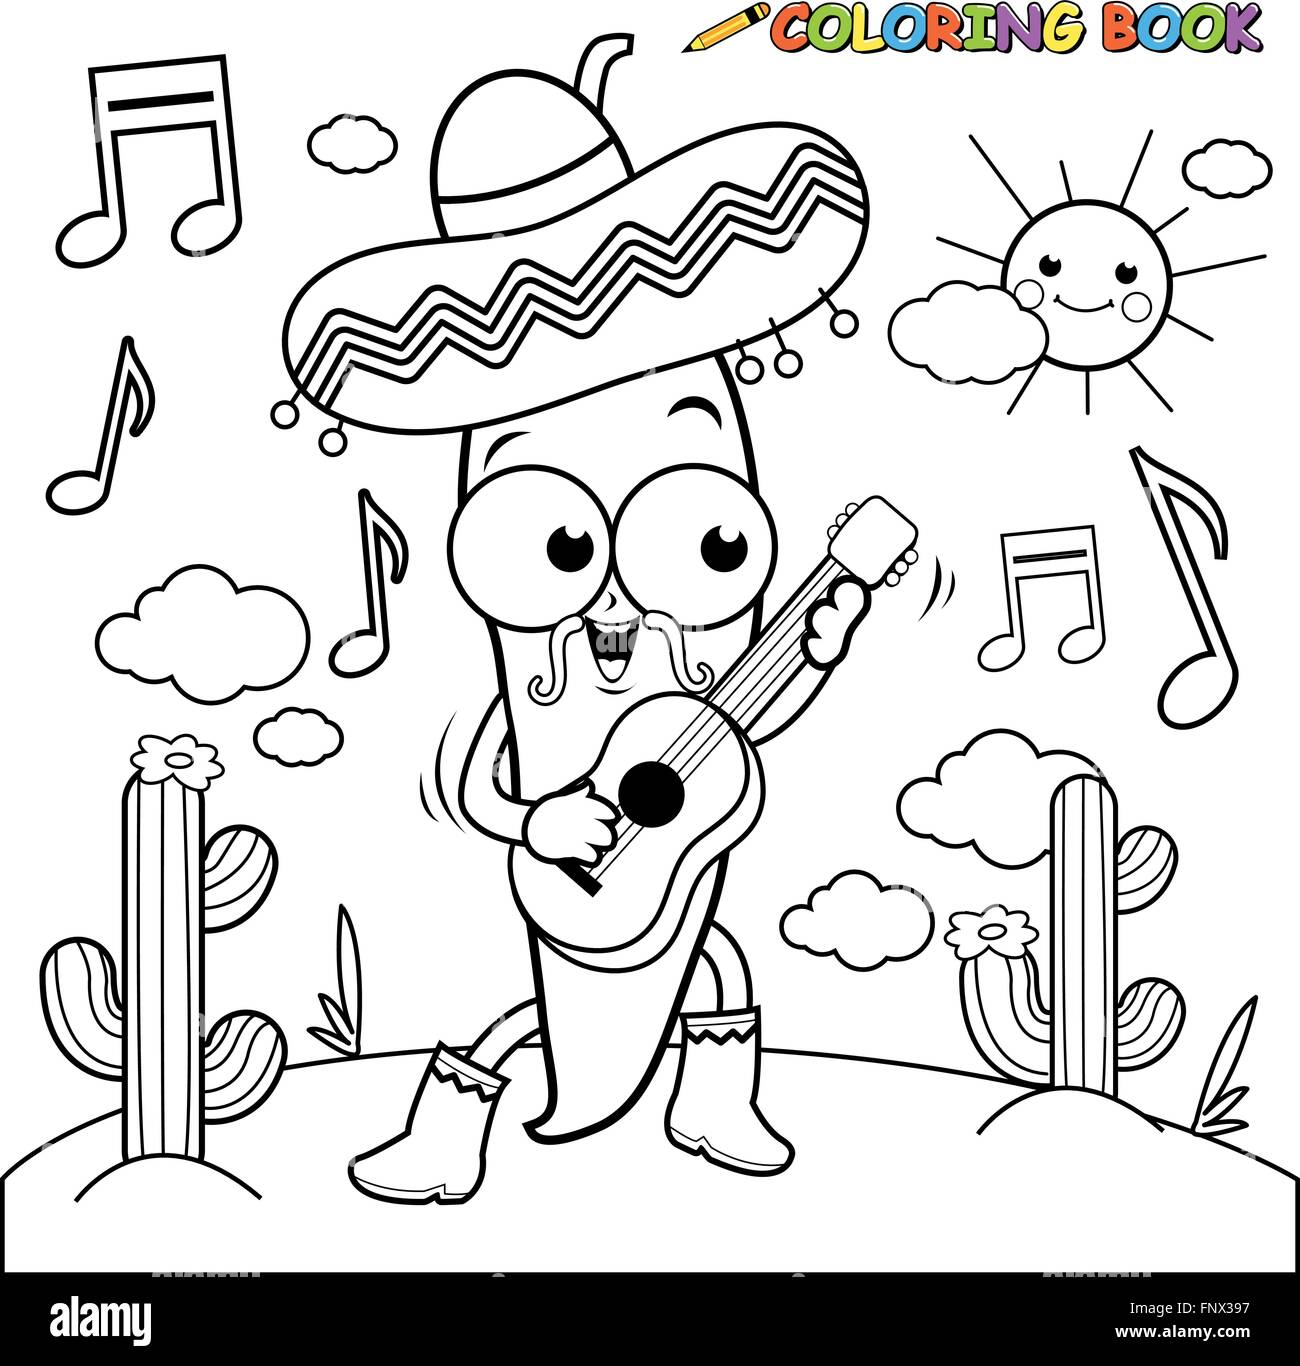 Mariachi chili pepper playing the guitar coloring page Stock ...